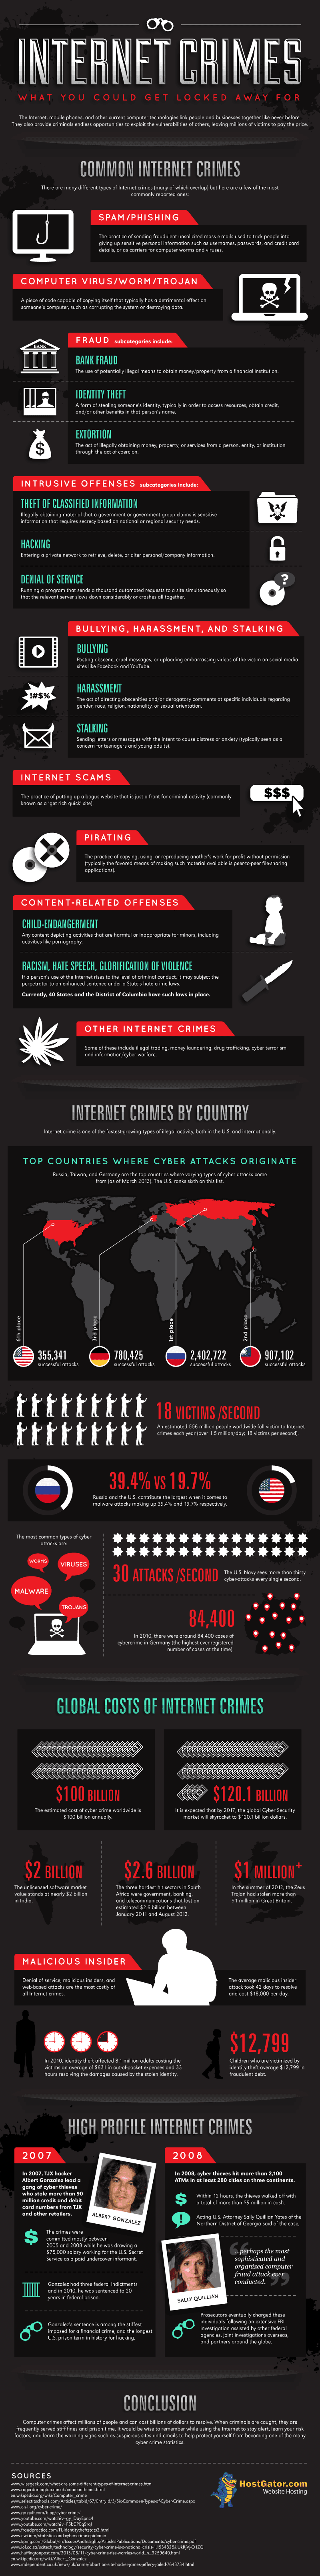 Internet Crimes #infographic